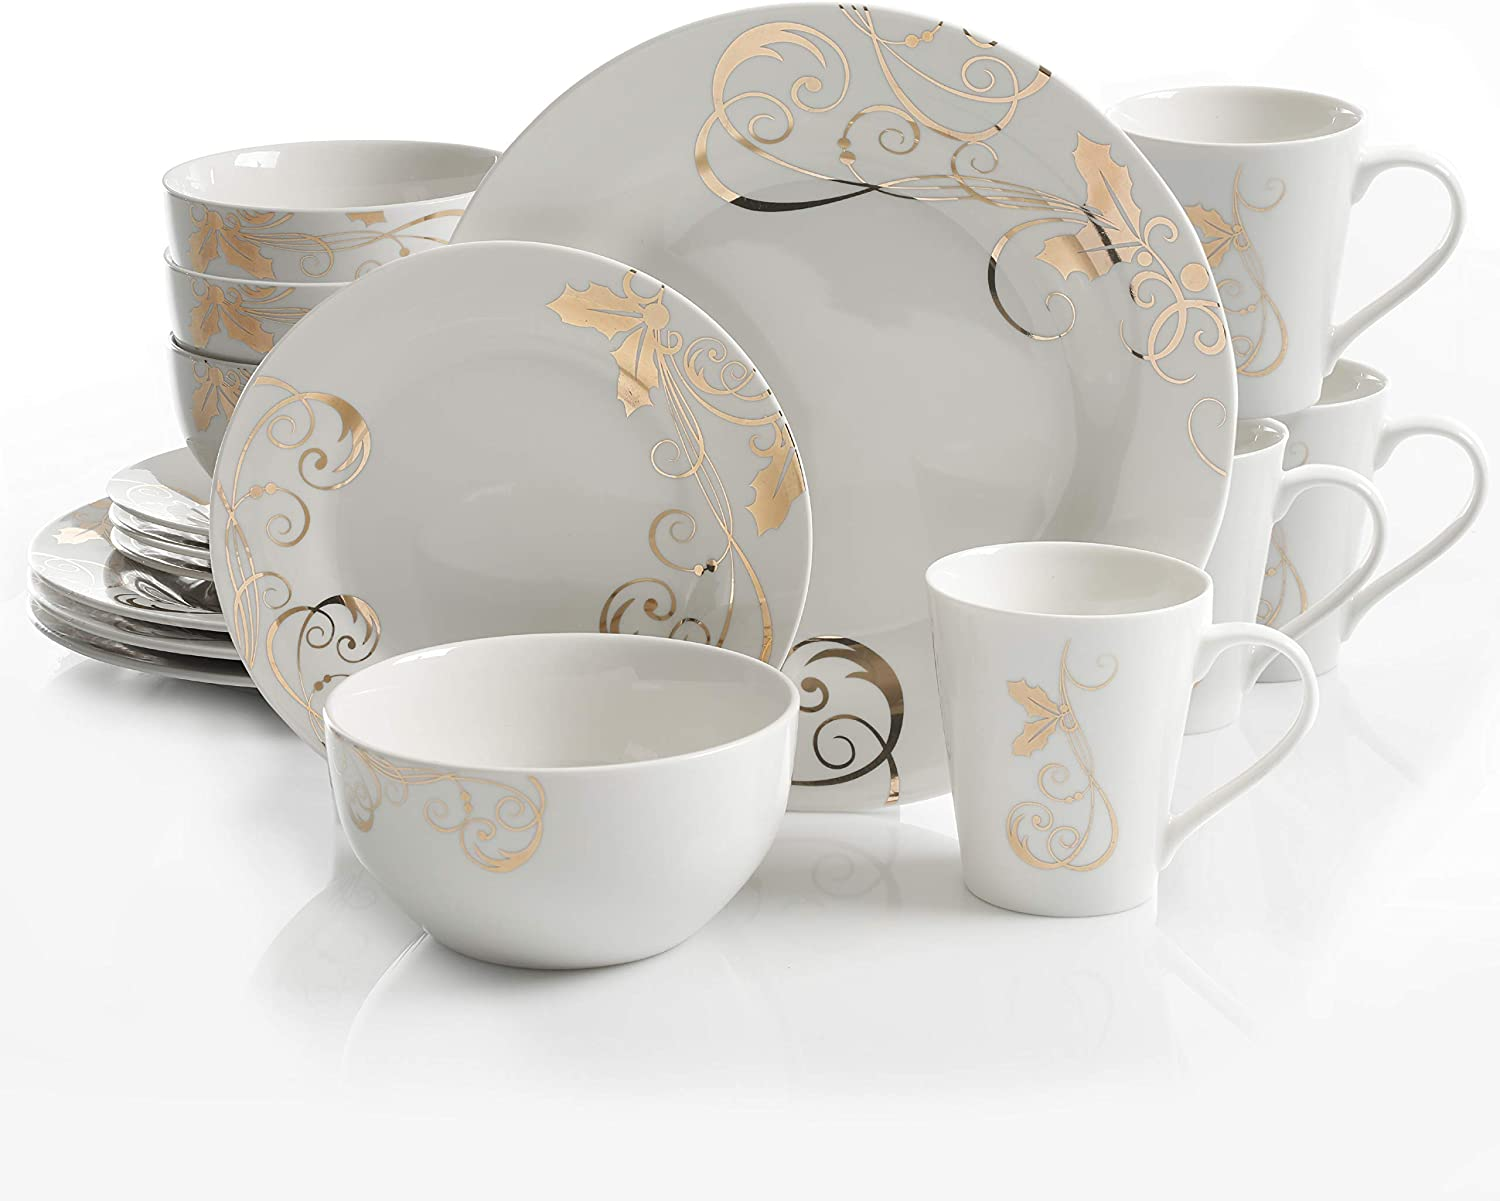 Gibson Gold 16 PC Dinnerware Set, Serving, Porcelain